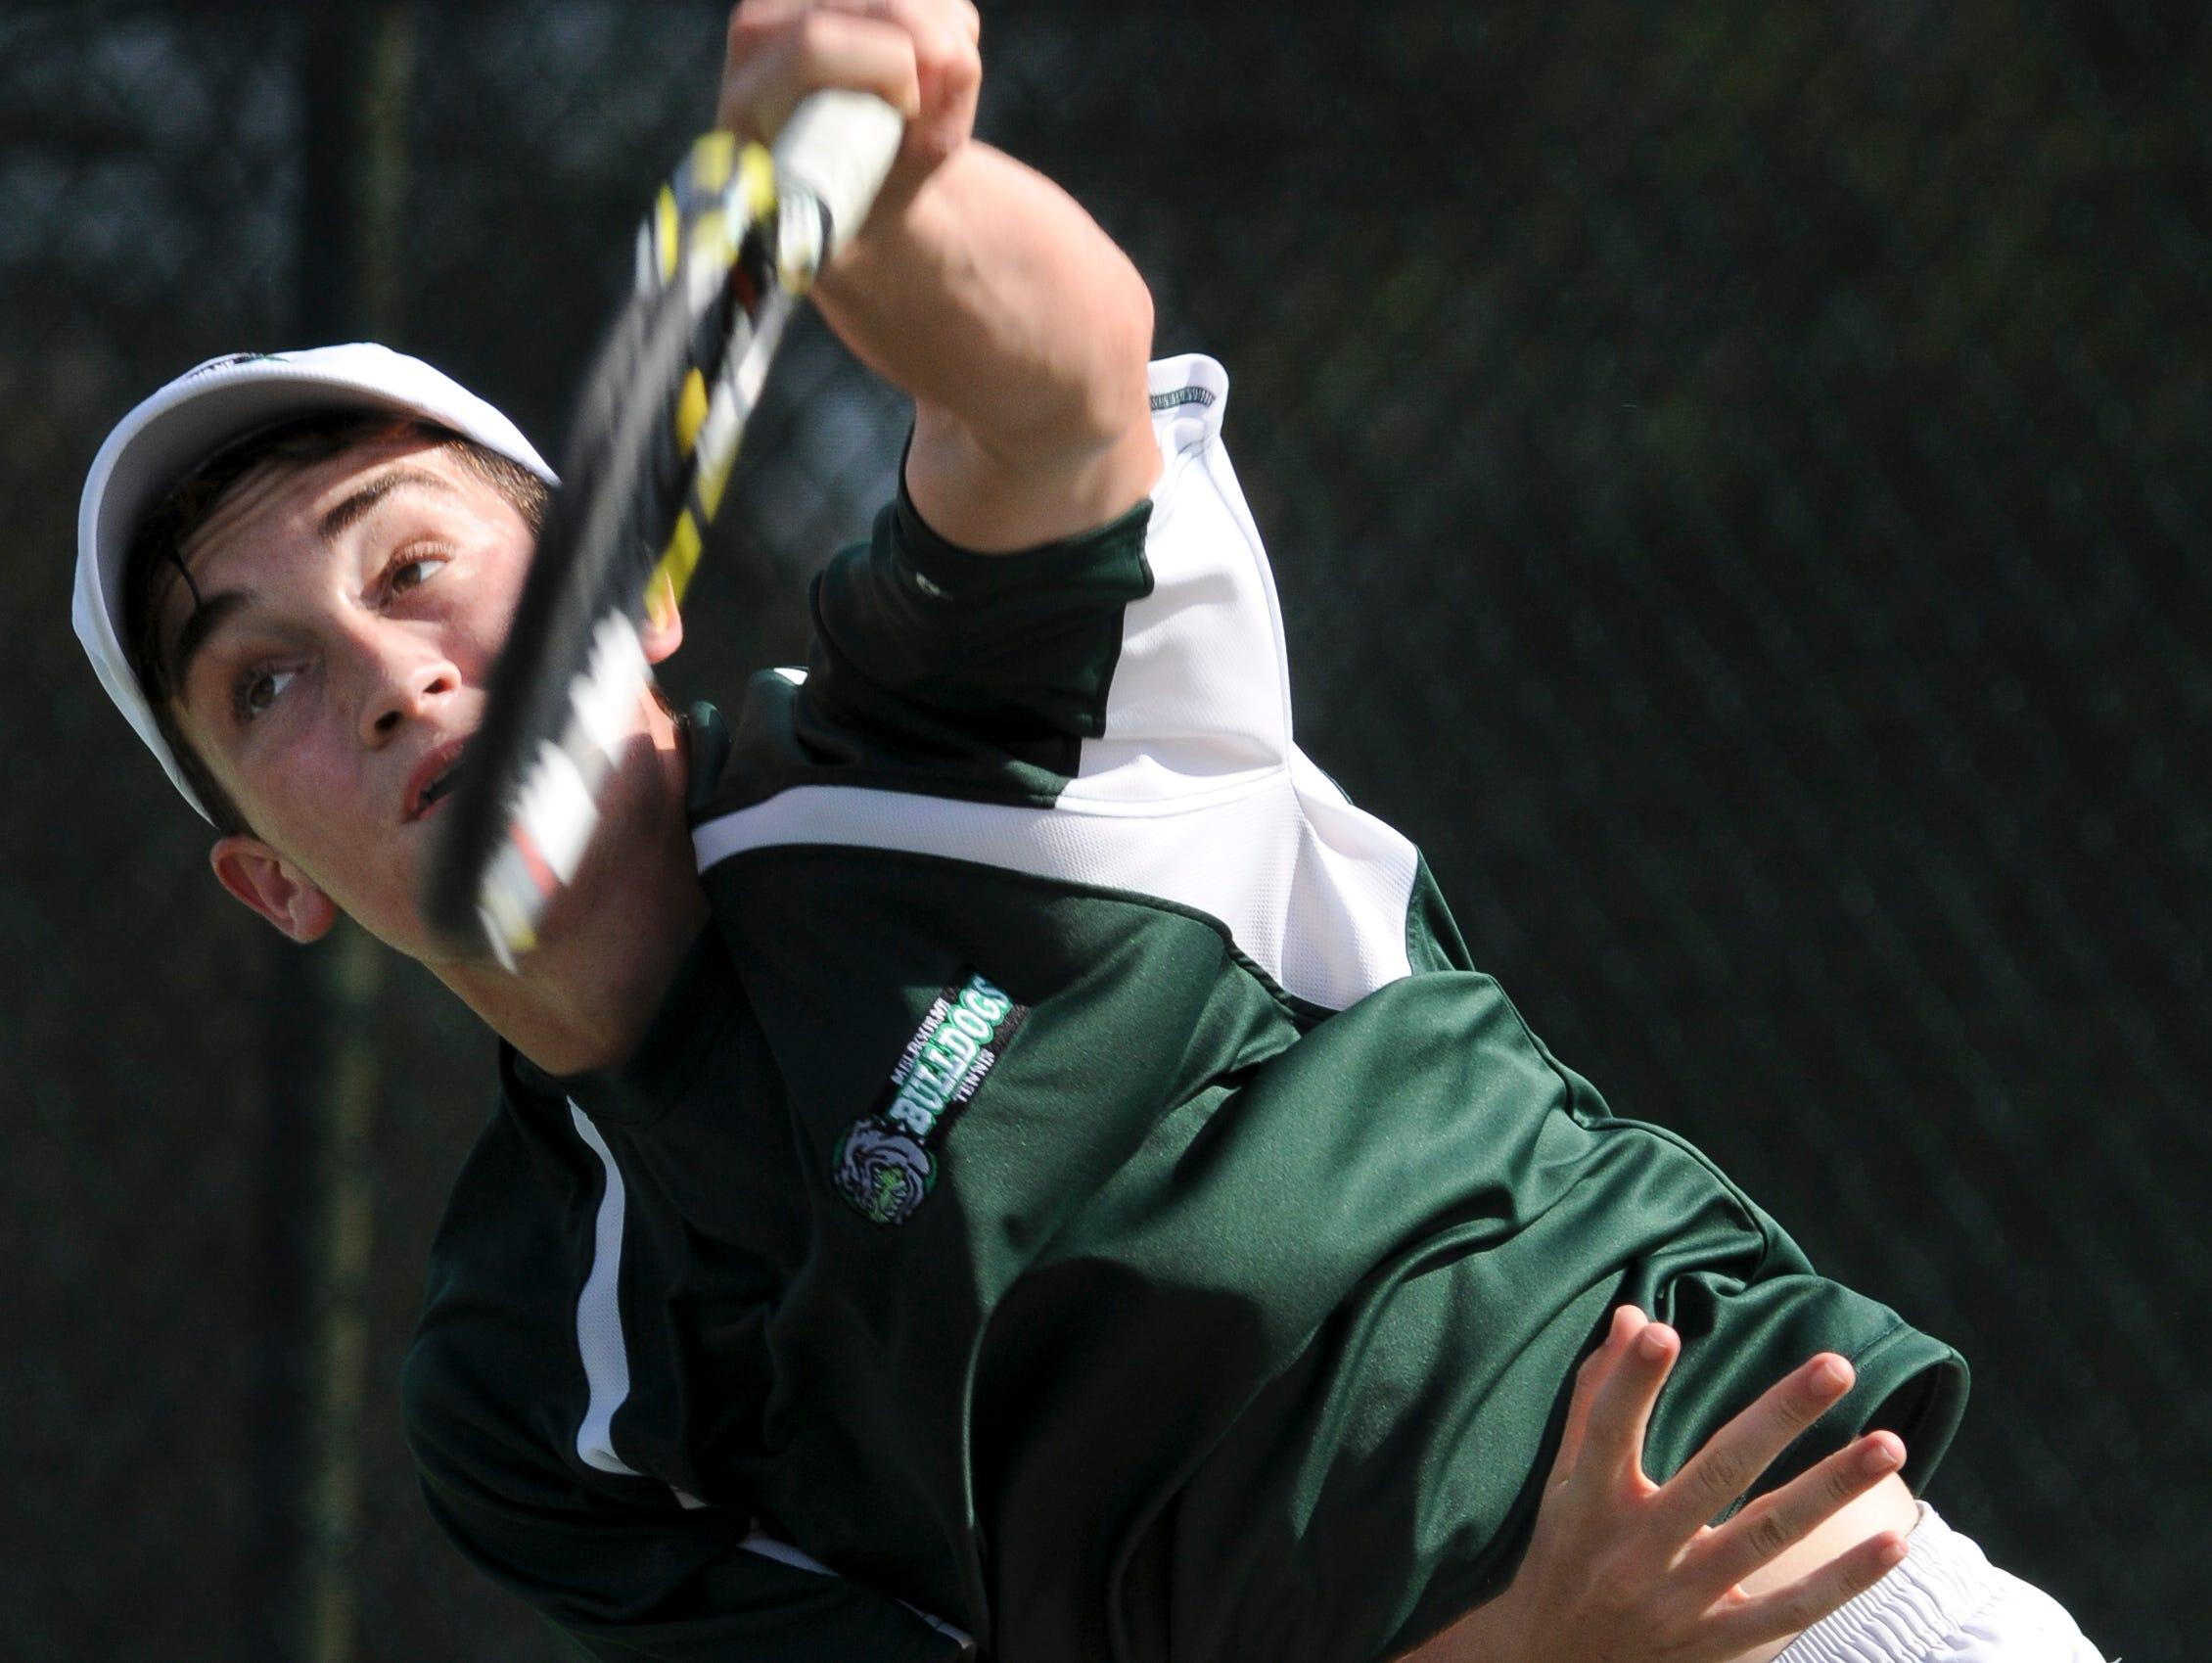 Greg Durham of Melbourne serves the ball during a recent match against Matheus Olivera of Lake Nona.